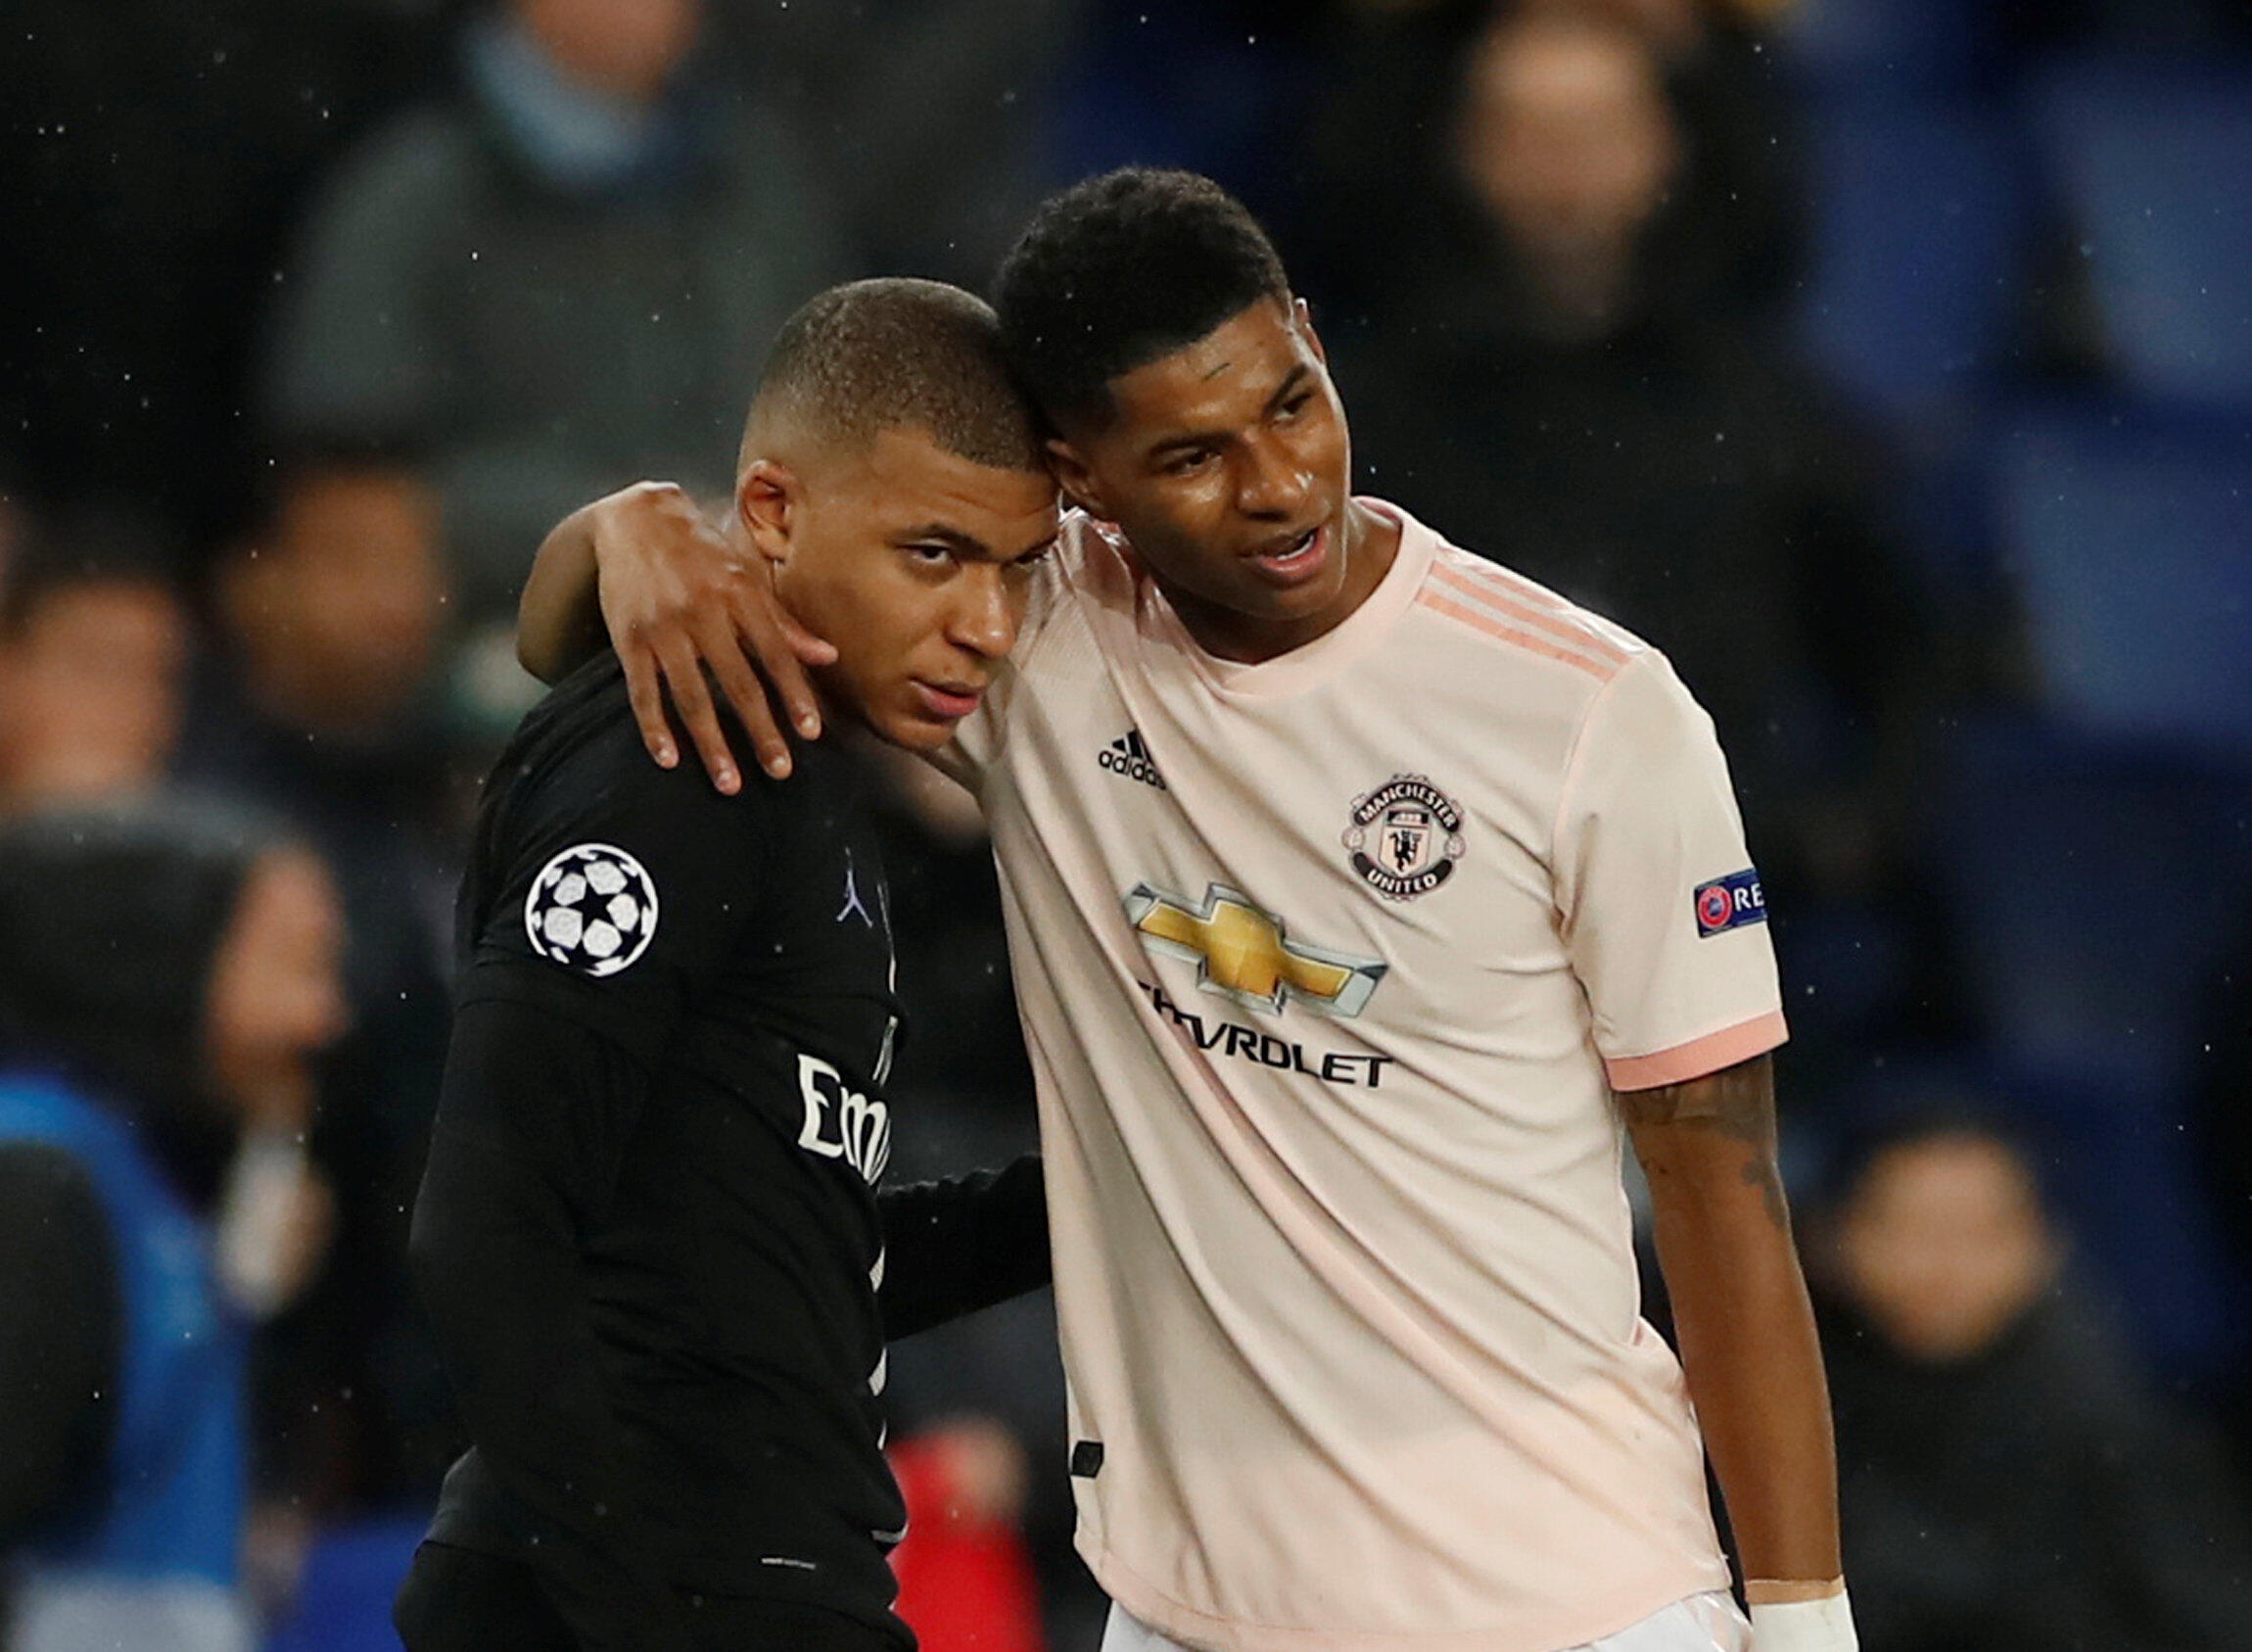 Manchester United's Marcus Rashford (right) consoles PSG's Kylian Mbappé after the second leg of the last 16 clash between the sides.